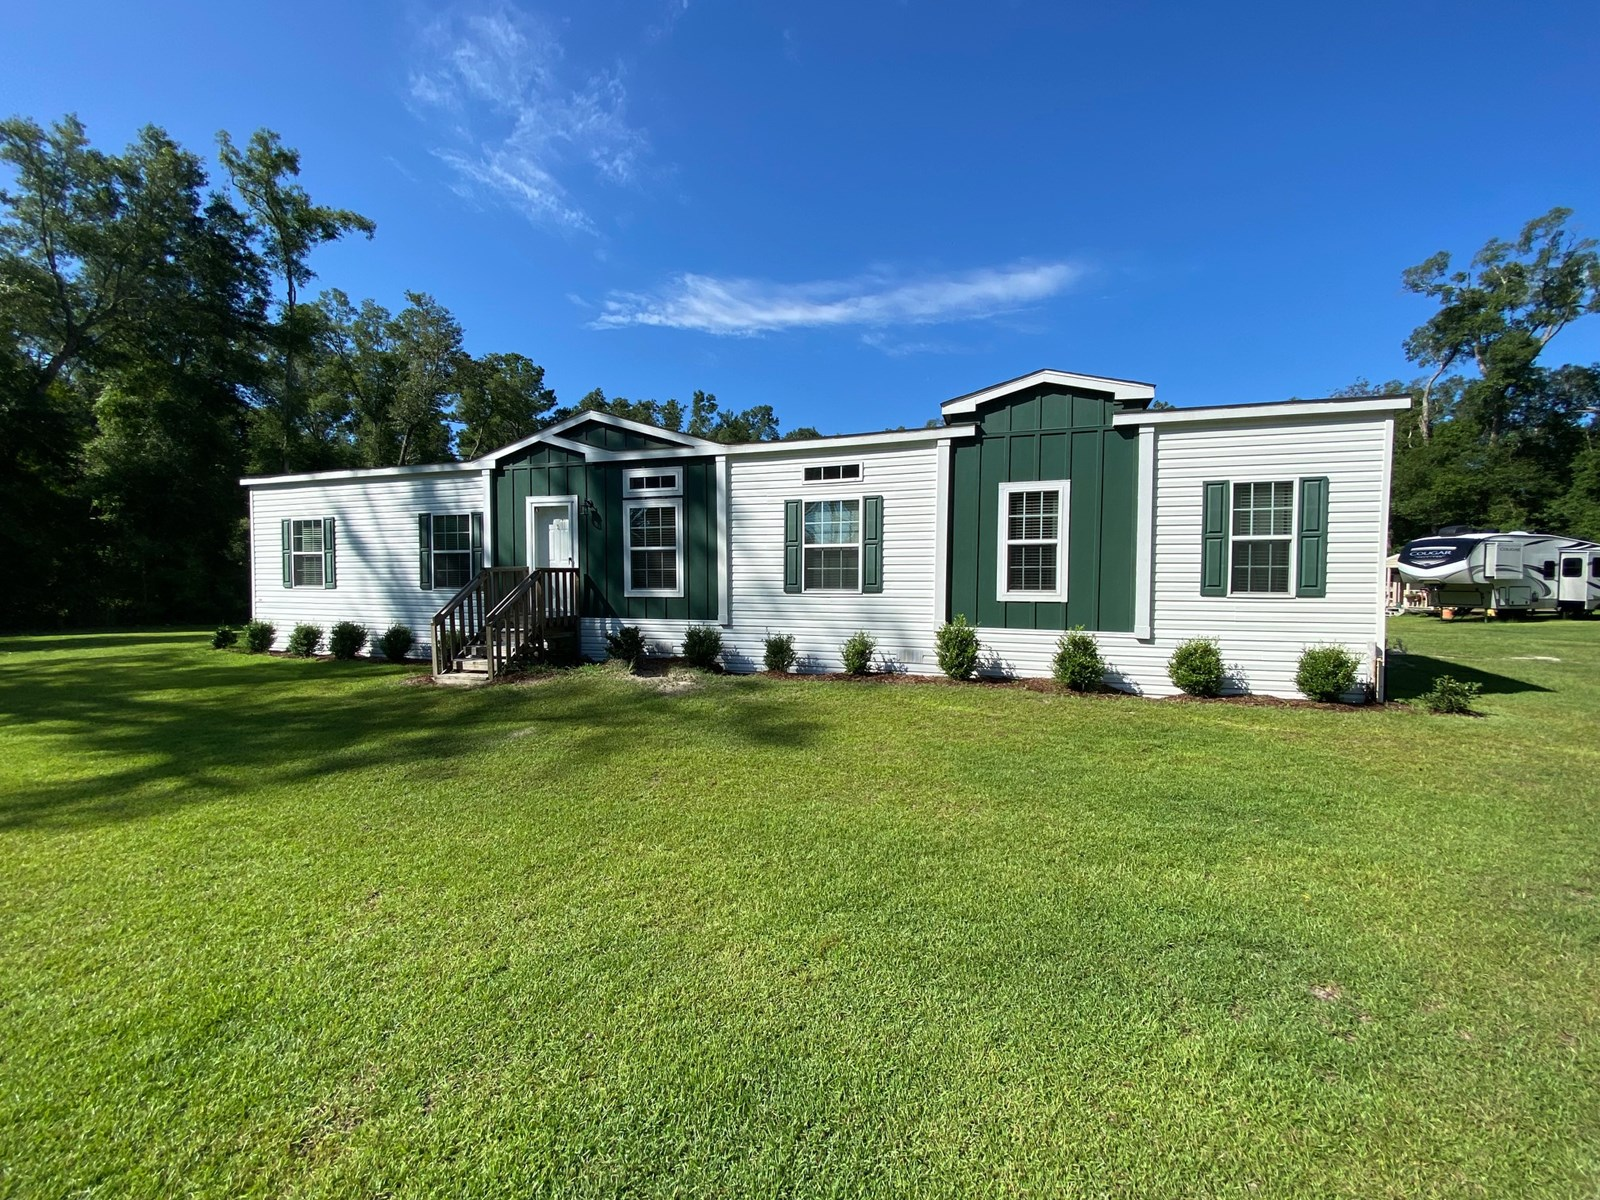 BEAUTIFUL 4/2 HOME ON 6+ ACRES FOR $300,000!!!